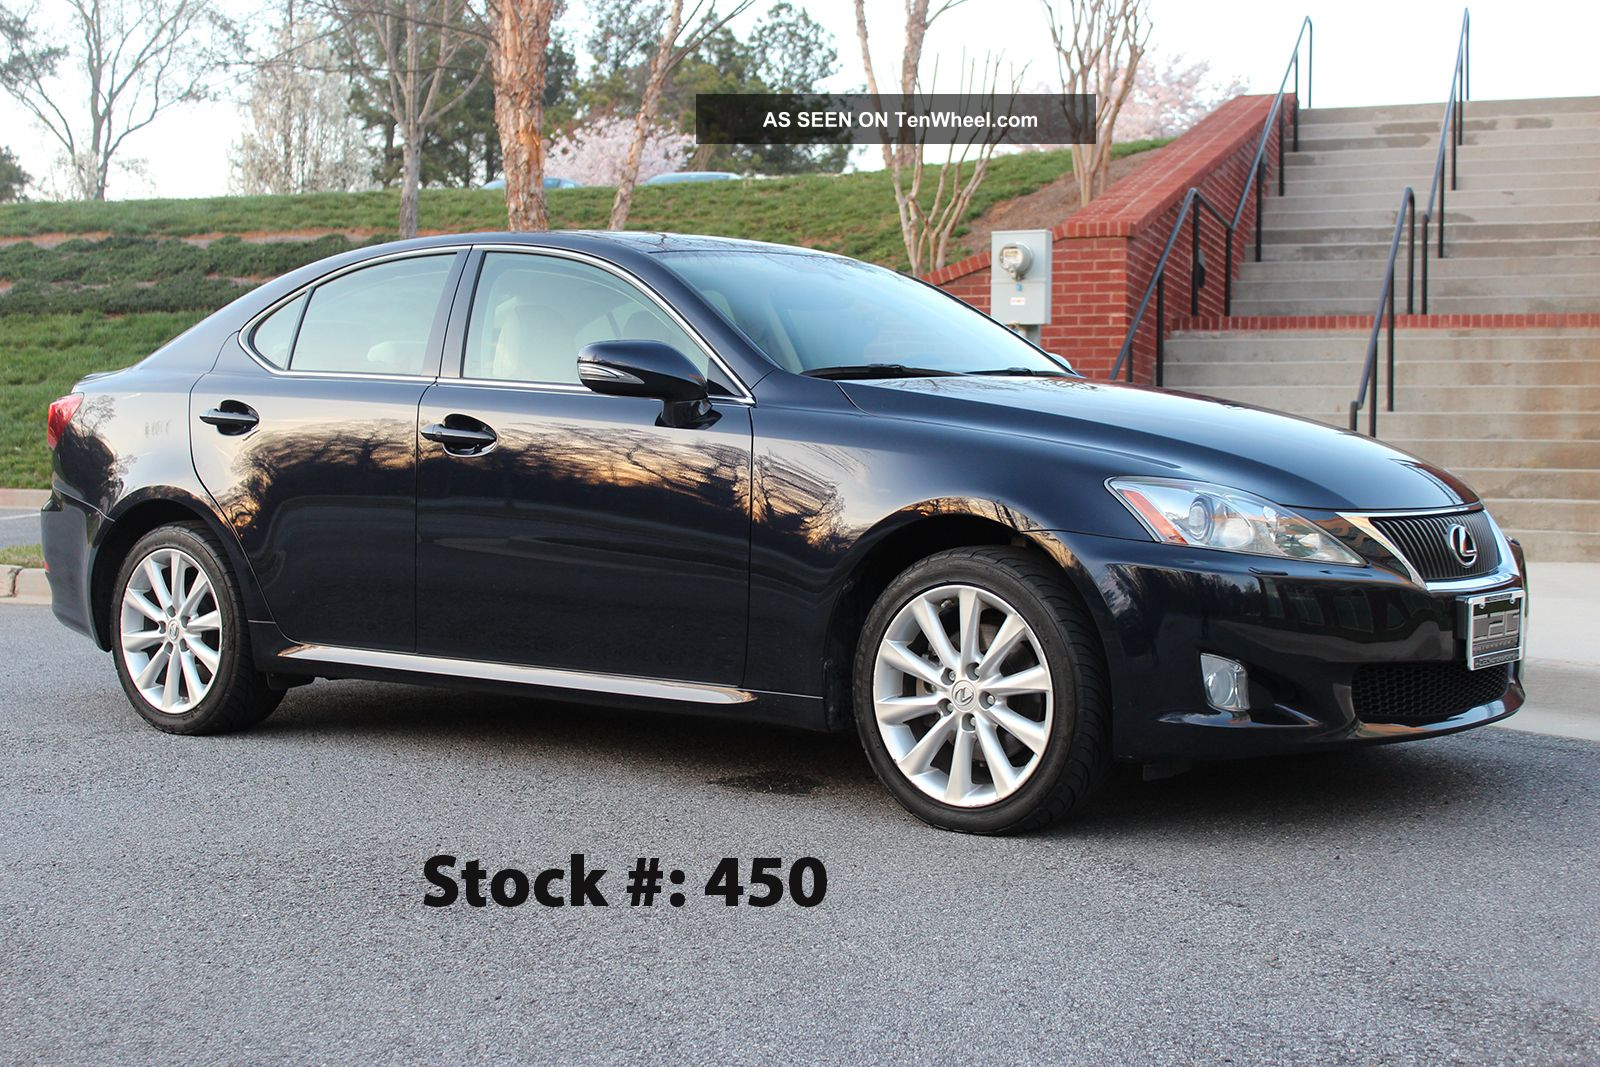 2010 lexus is 250 - image #8